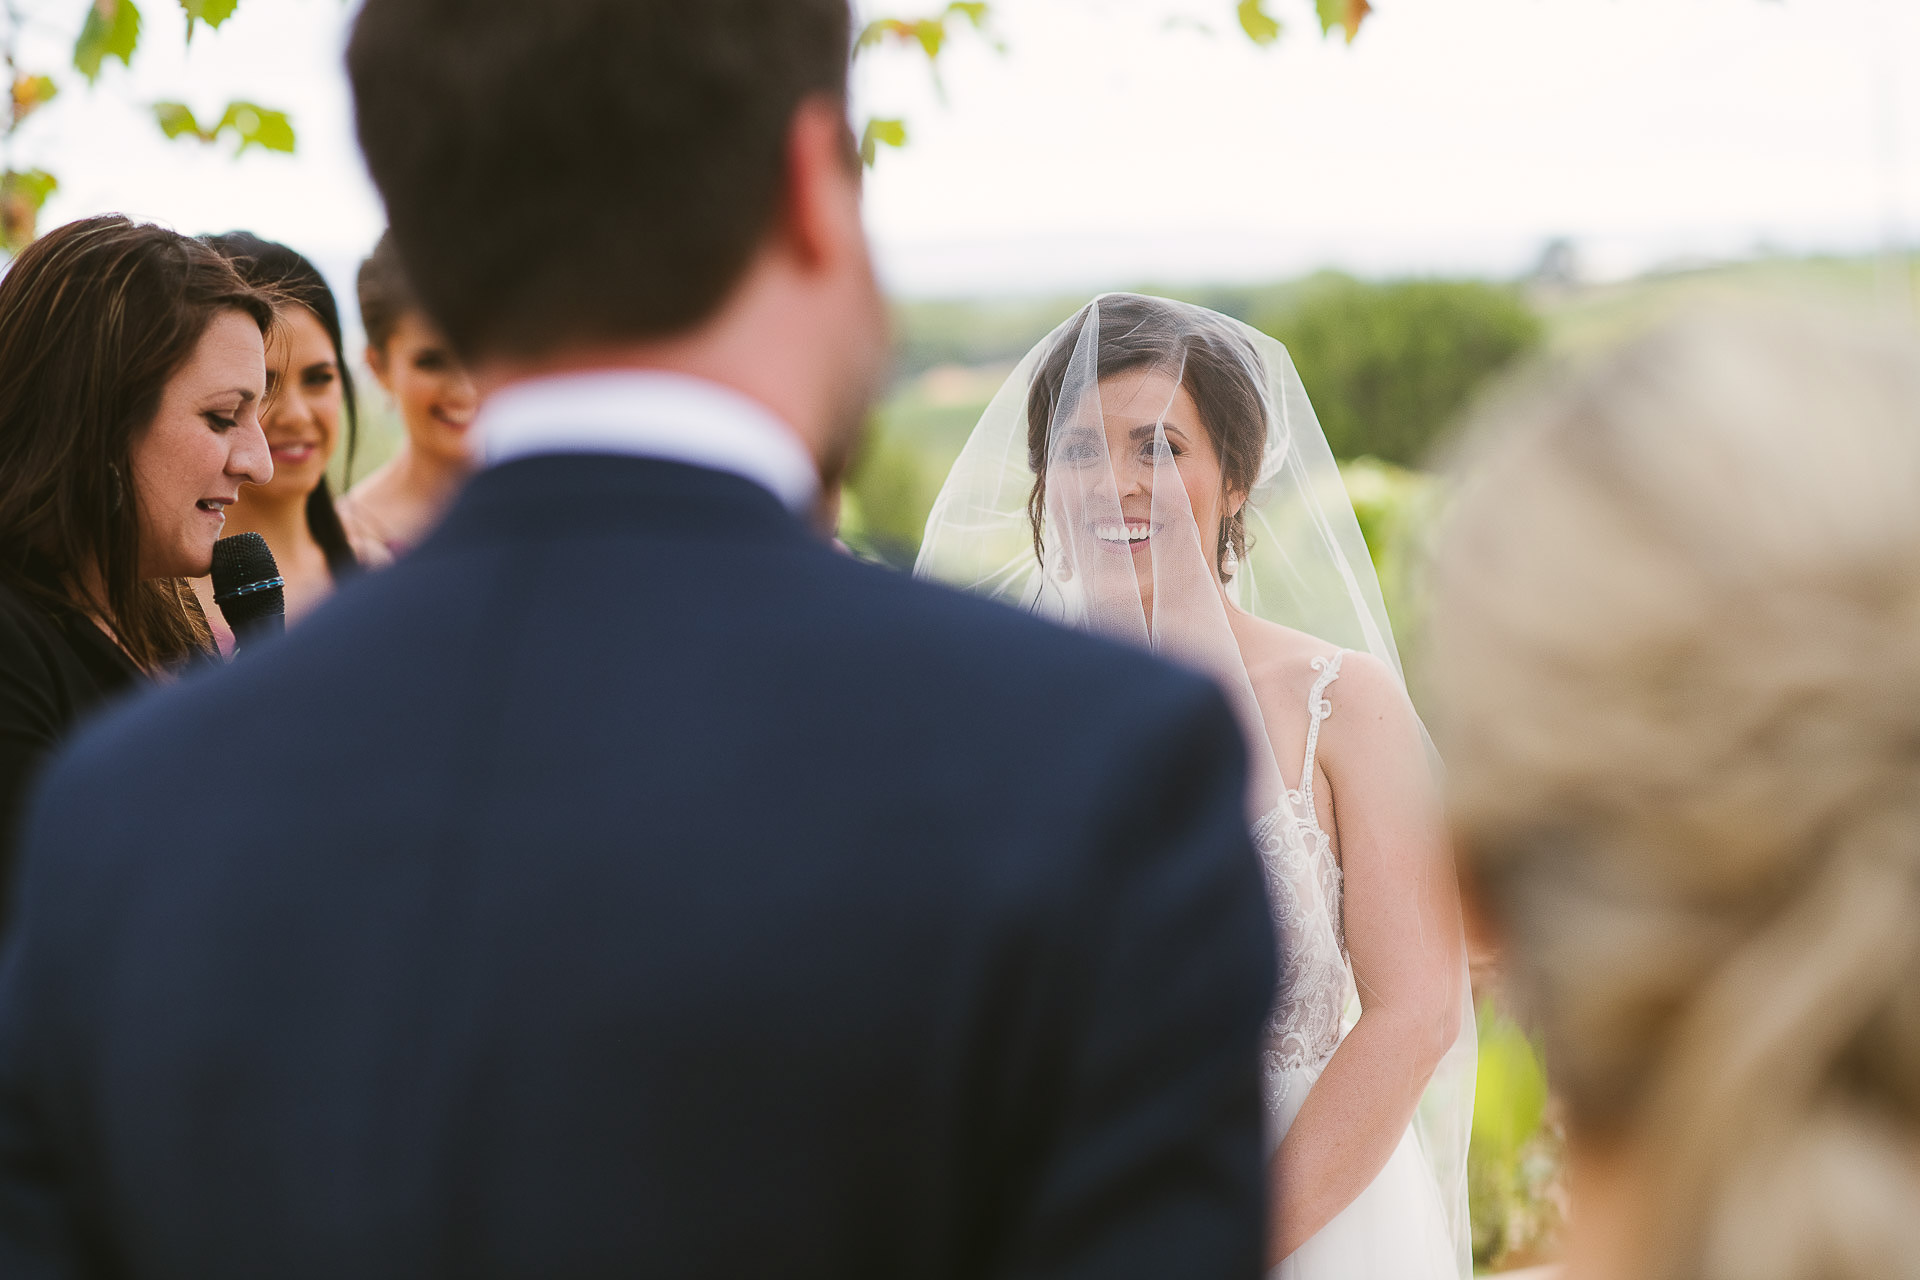 bride smiling over grooms shoulder during wedding ceremony